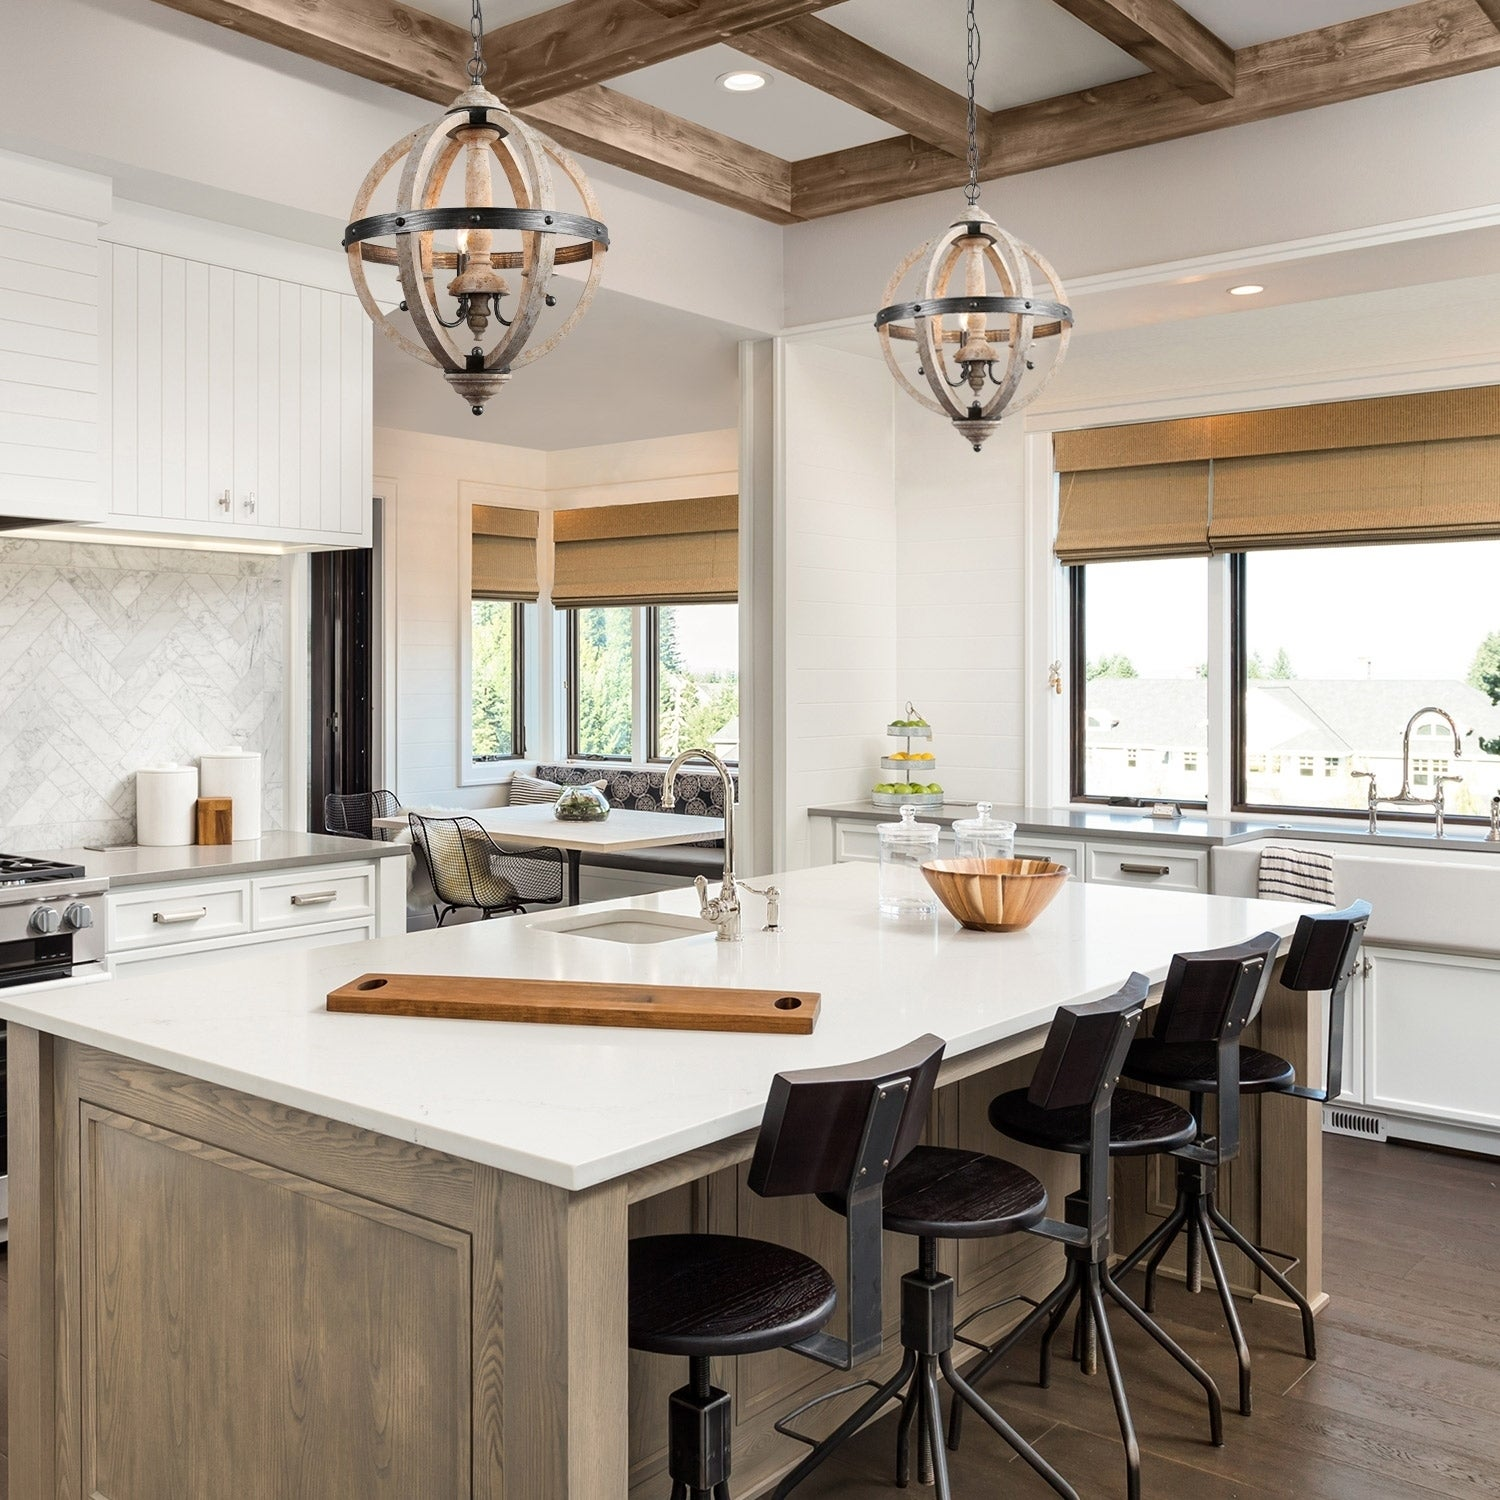 The Gray Barn Hester Gulch Farmhouse Chandelier Light with 3-light  Disdressed Wood for Kitchen Island